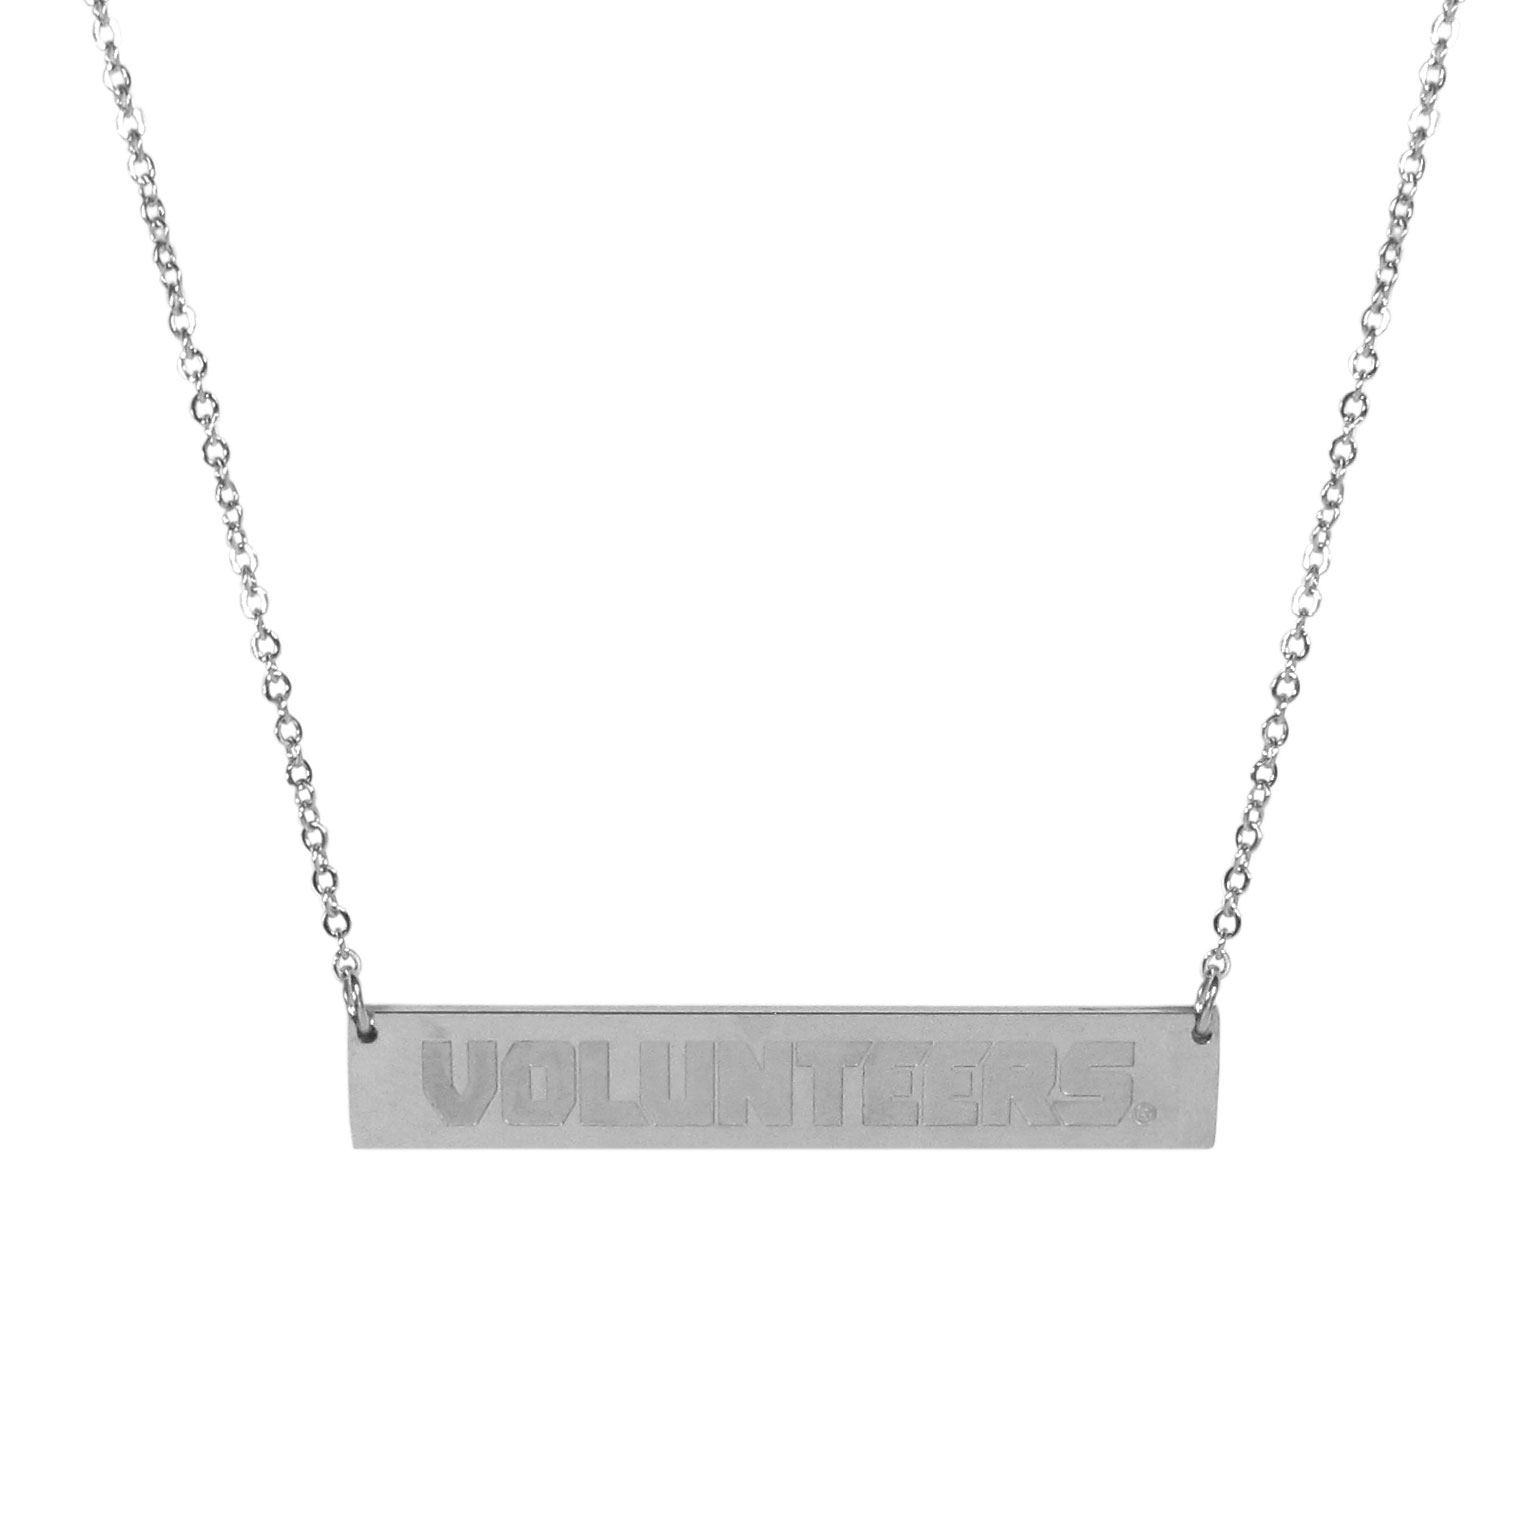 Tennessee Volunteers Bar Necklace - Simply beautiful Tennessee Volunteers bar necklace on a 20 inch link chain with 2 inch adjustable extender. This light-weight bar necklace has a stylish silver colored finish with the team name expertly etched on the 1.5 inch bar. Every female  fan will enjoy this contempory fashion accessory.